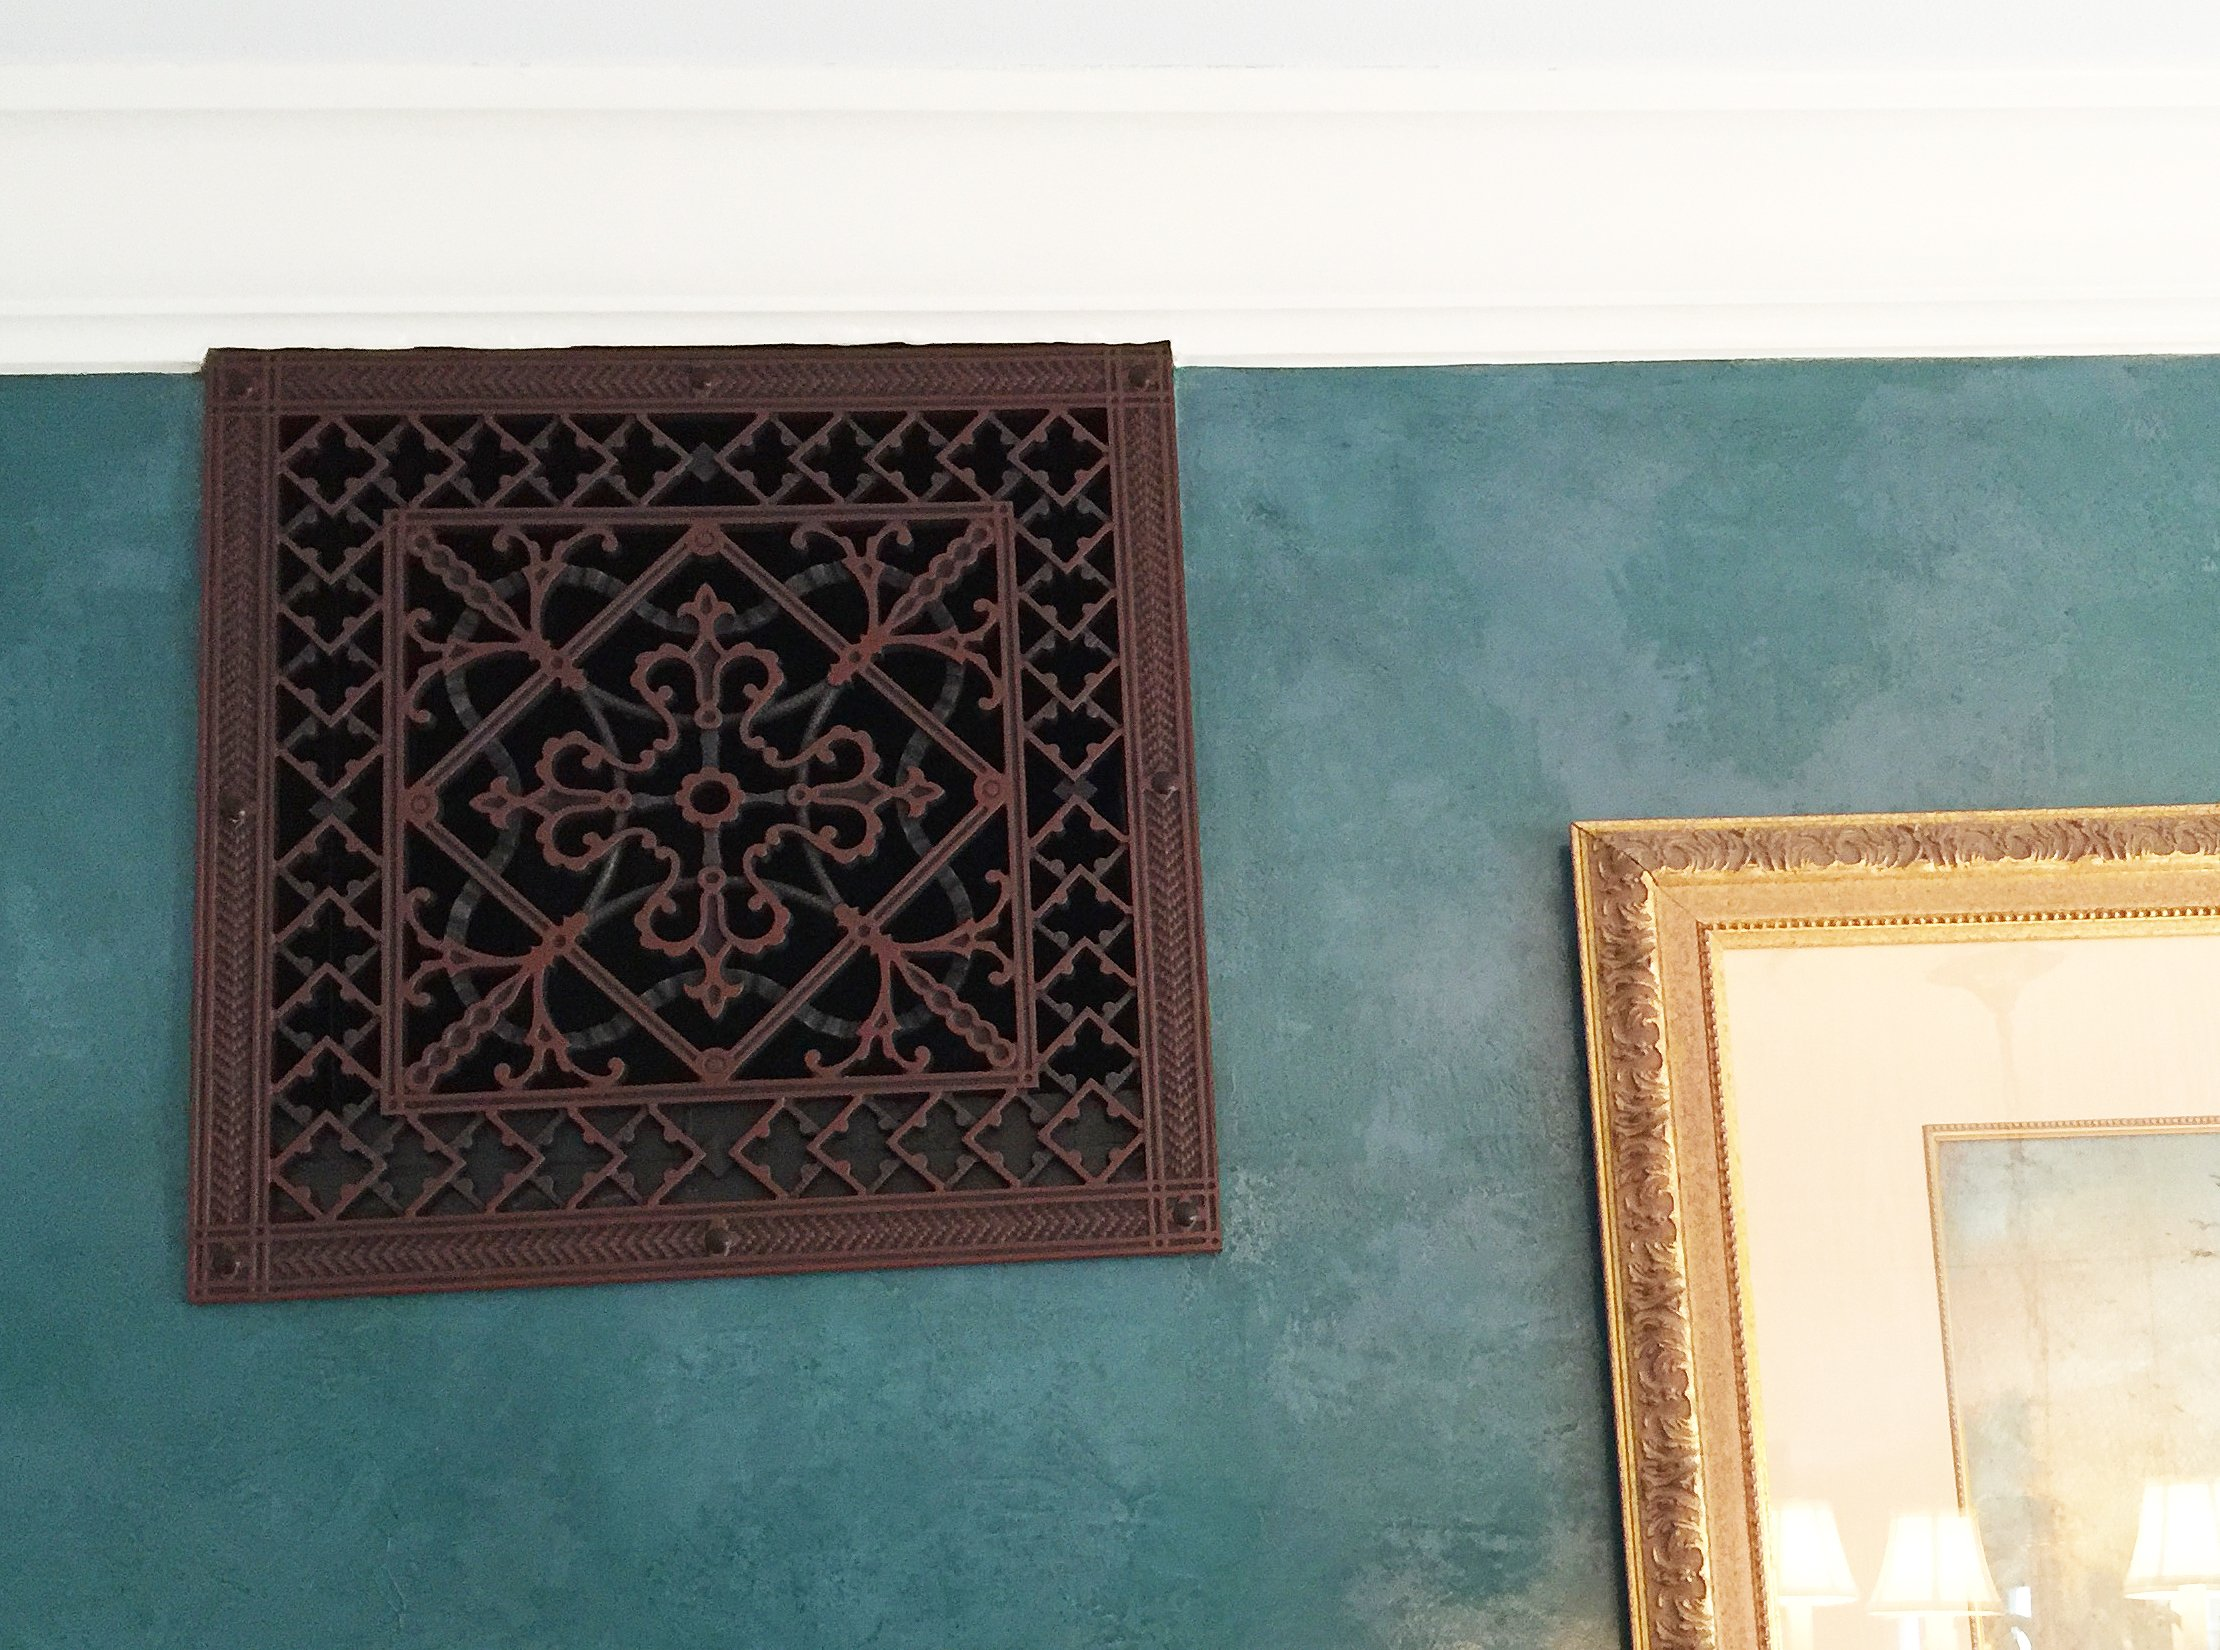 """Decorative Grille, Vent Cover, or Return Register. Made of Urethane Resin to fit over a 16''x16'' duct or opening. Total size of vent is 18""""x18''x3/8'', for wall and ceiling grilles (not for floor use)."""